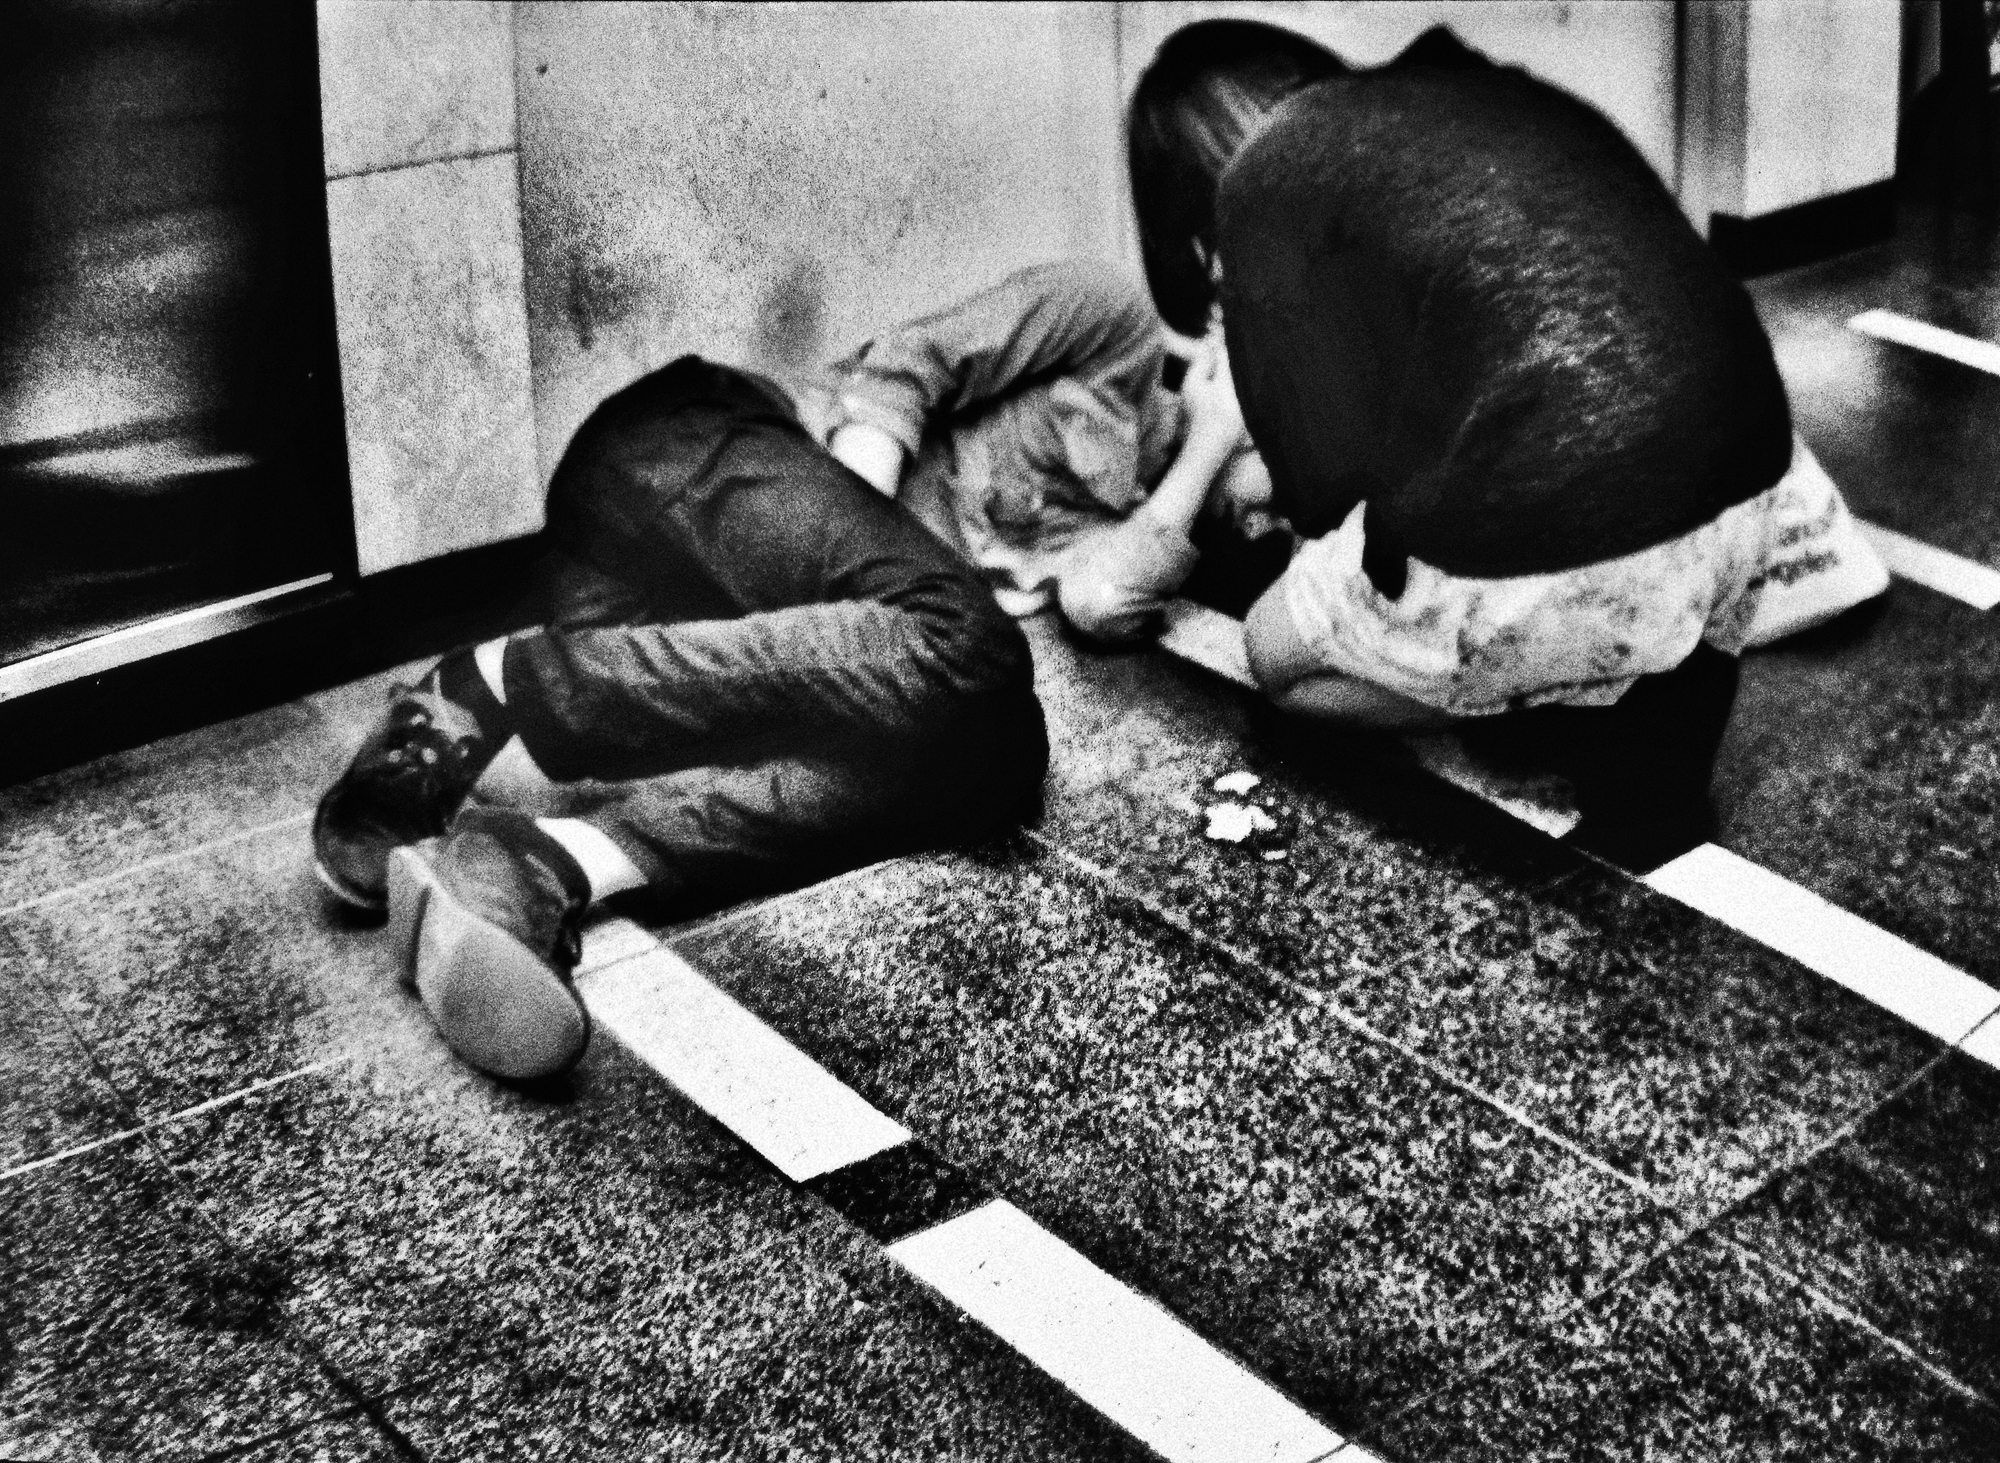 A girl tries to help her heavily drunk boyfriend who collapsed in an alley in Shinjuku. Early evening hard drinking is a widespread habit among the often depressed young generation in Tokyo.